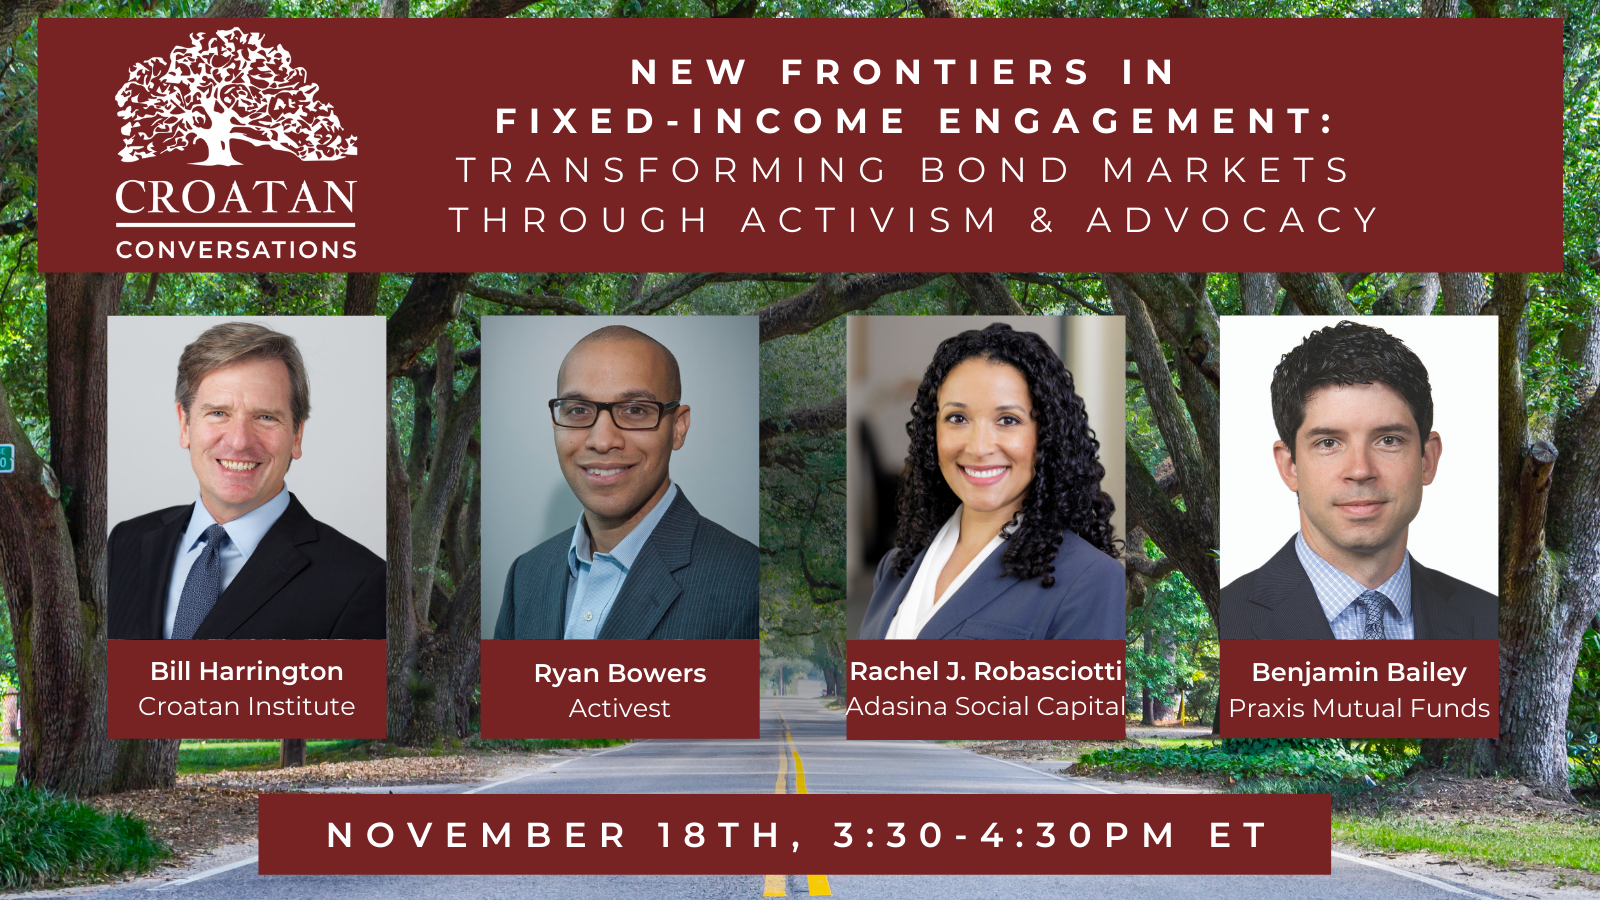 New Frontiers in Fixed-Income Engagement